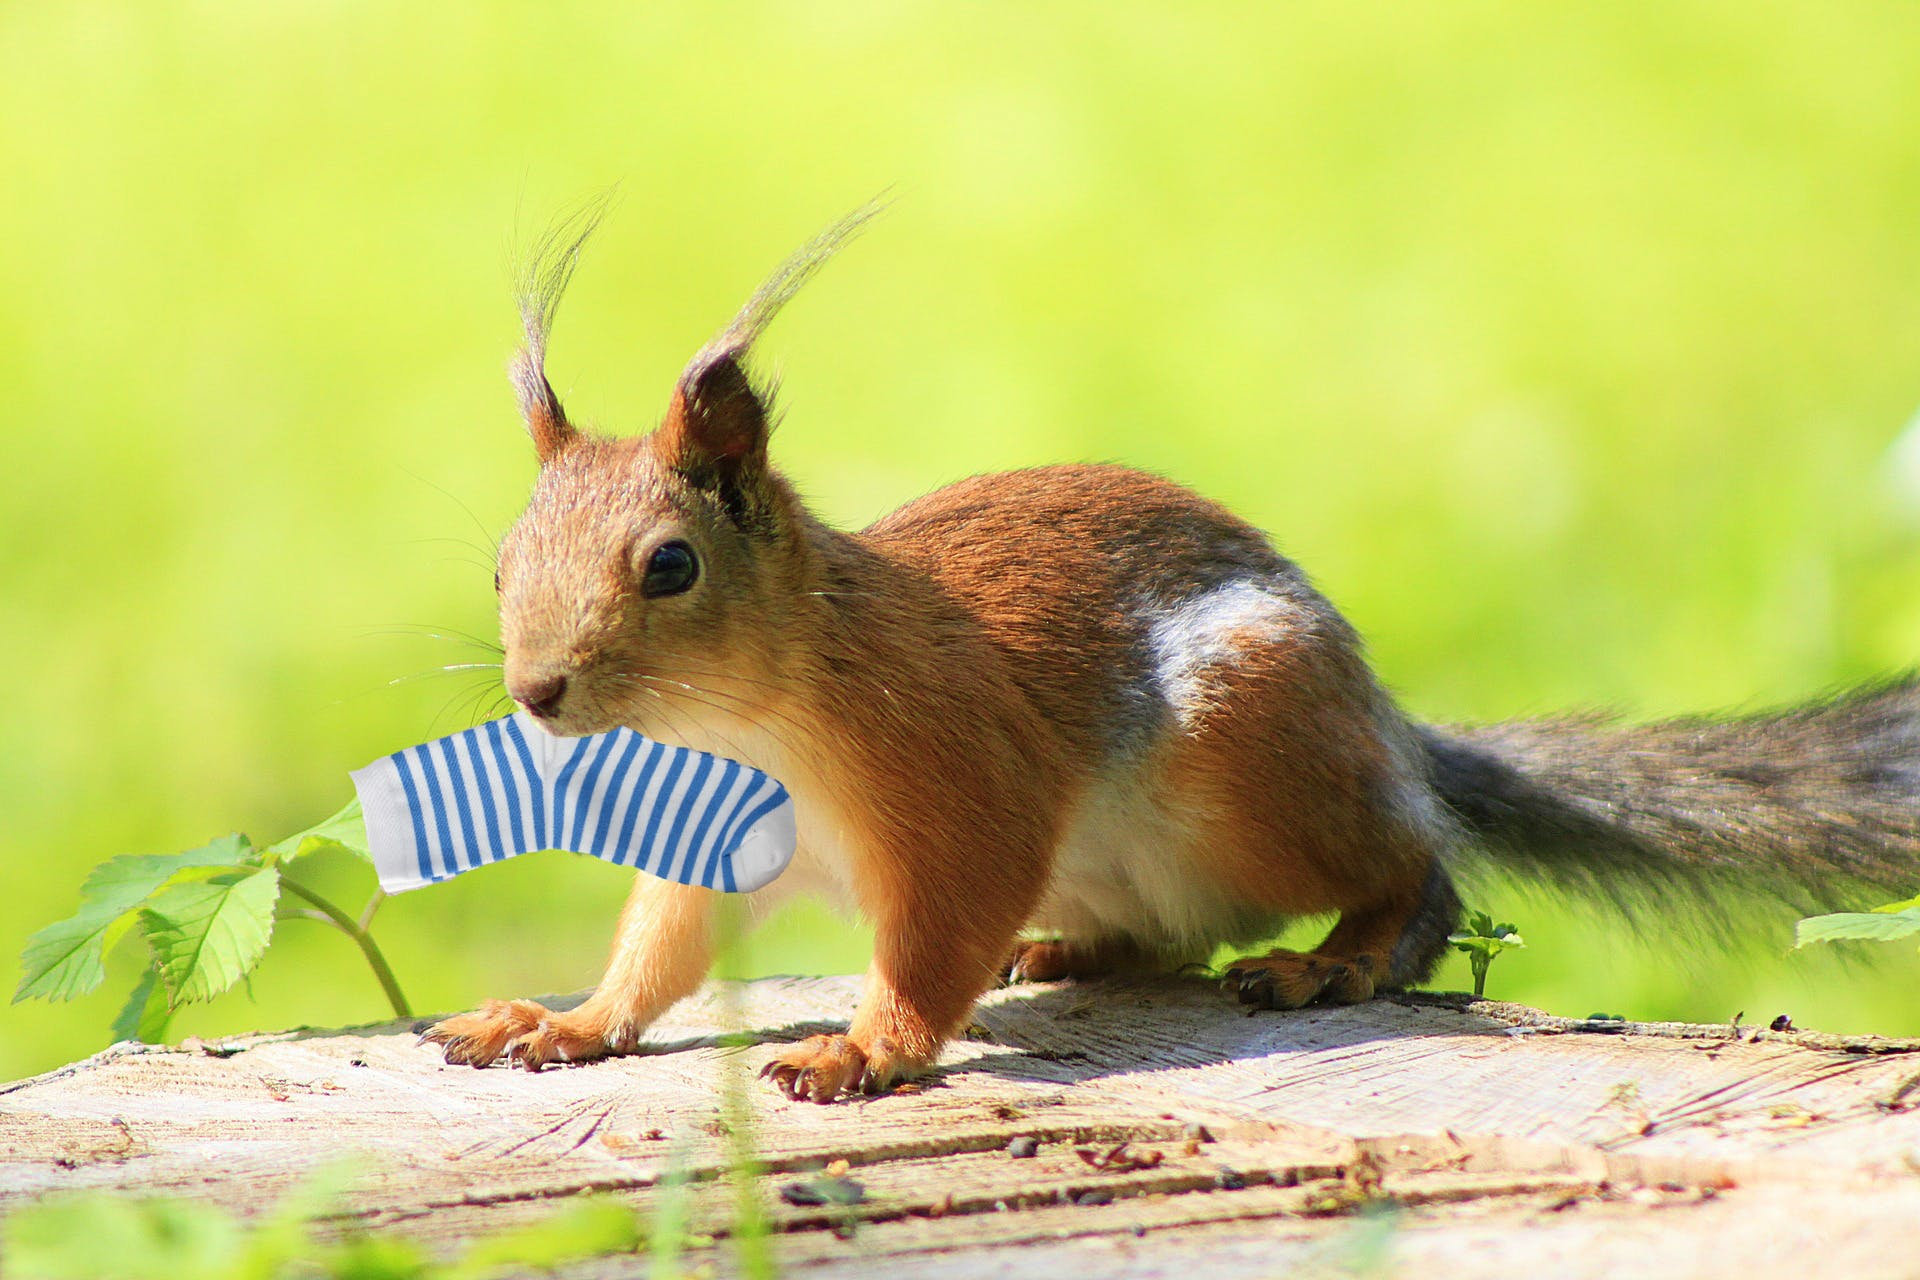 Here's a squirrel with a sock in its mouth